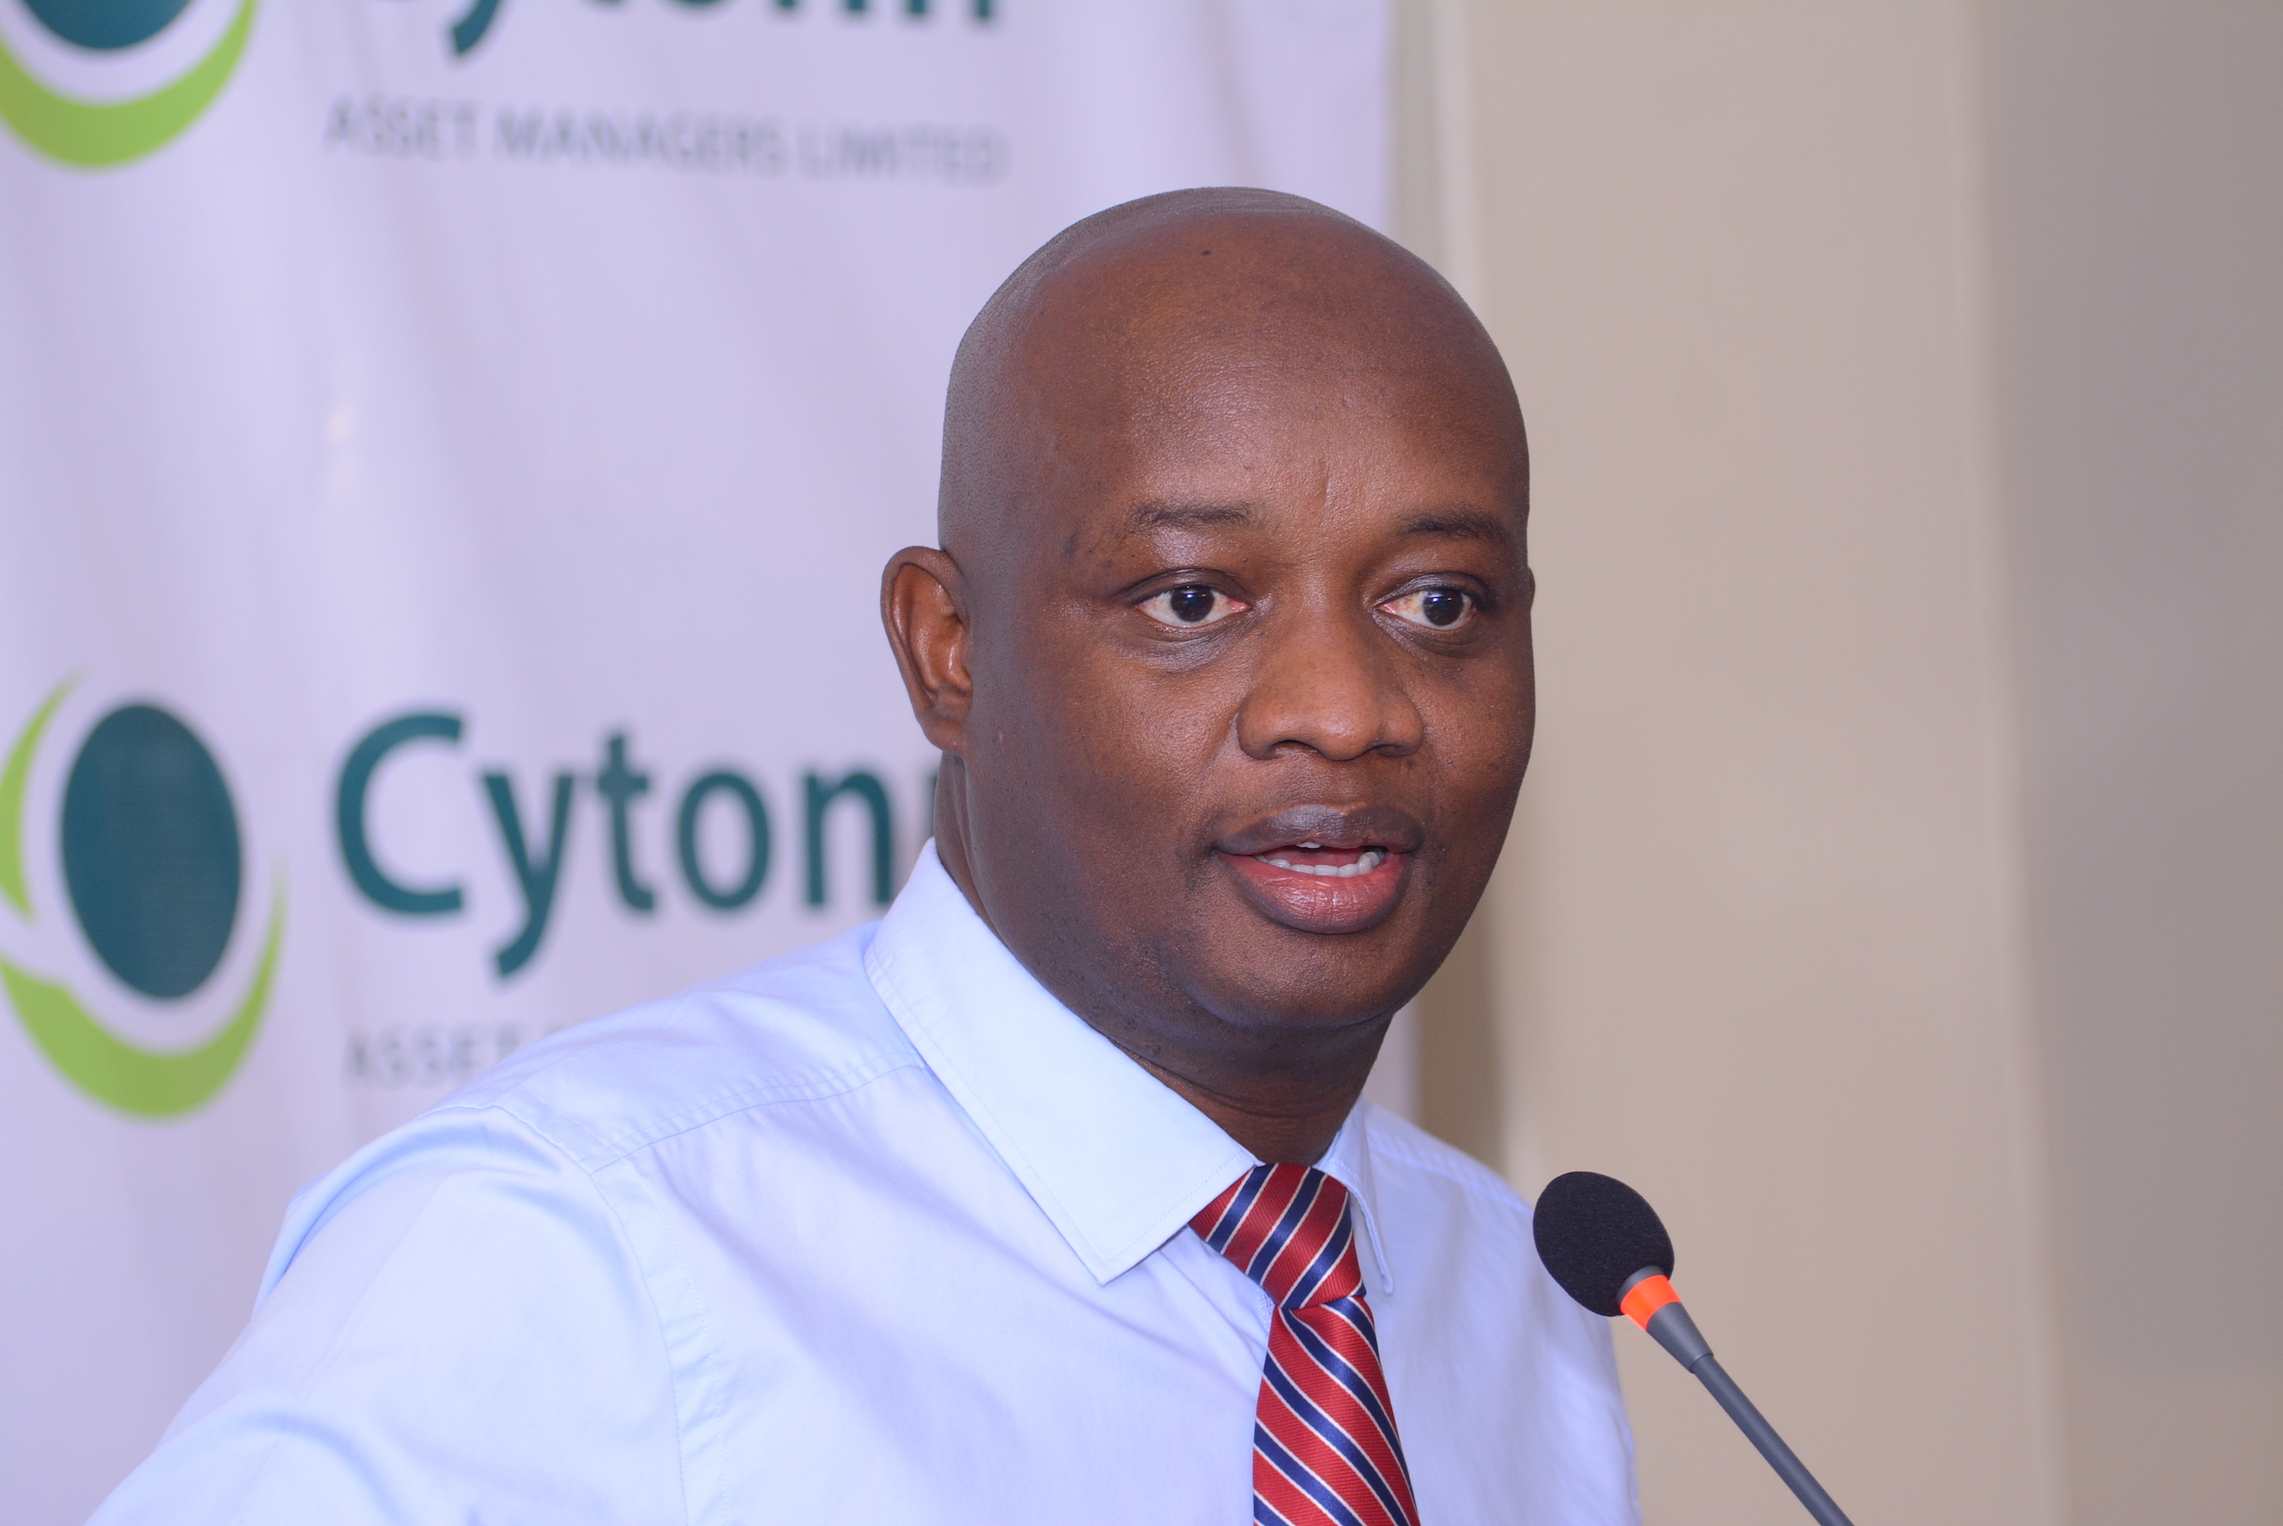 Cytonn Chief Executive Officer Edwin H Dande. www.buisnesstoday.co.ke